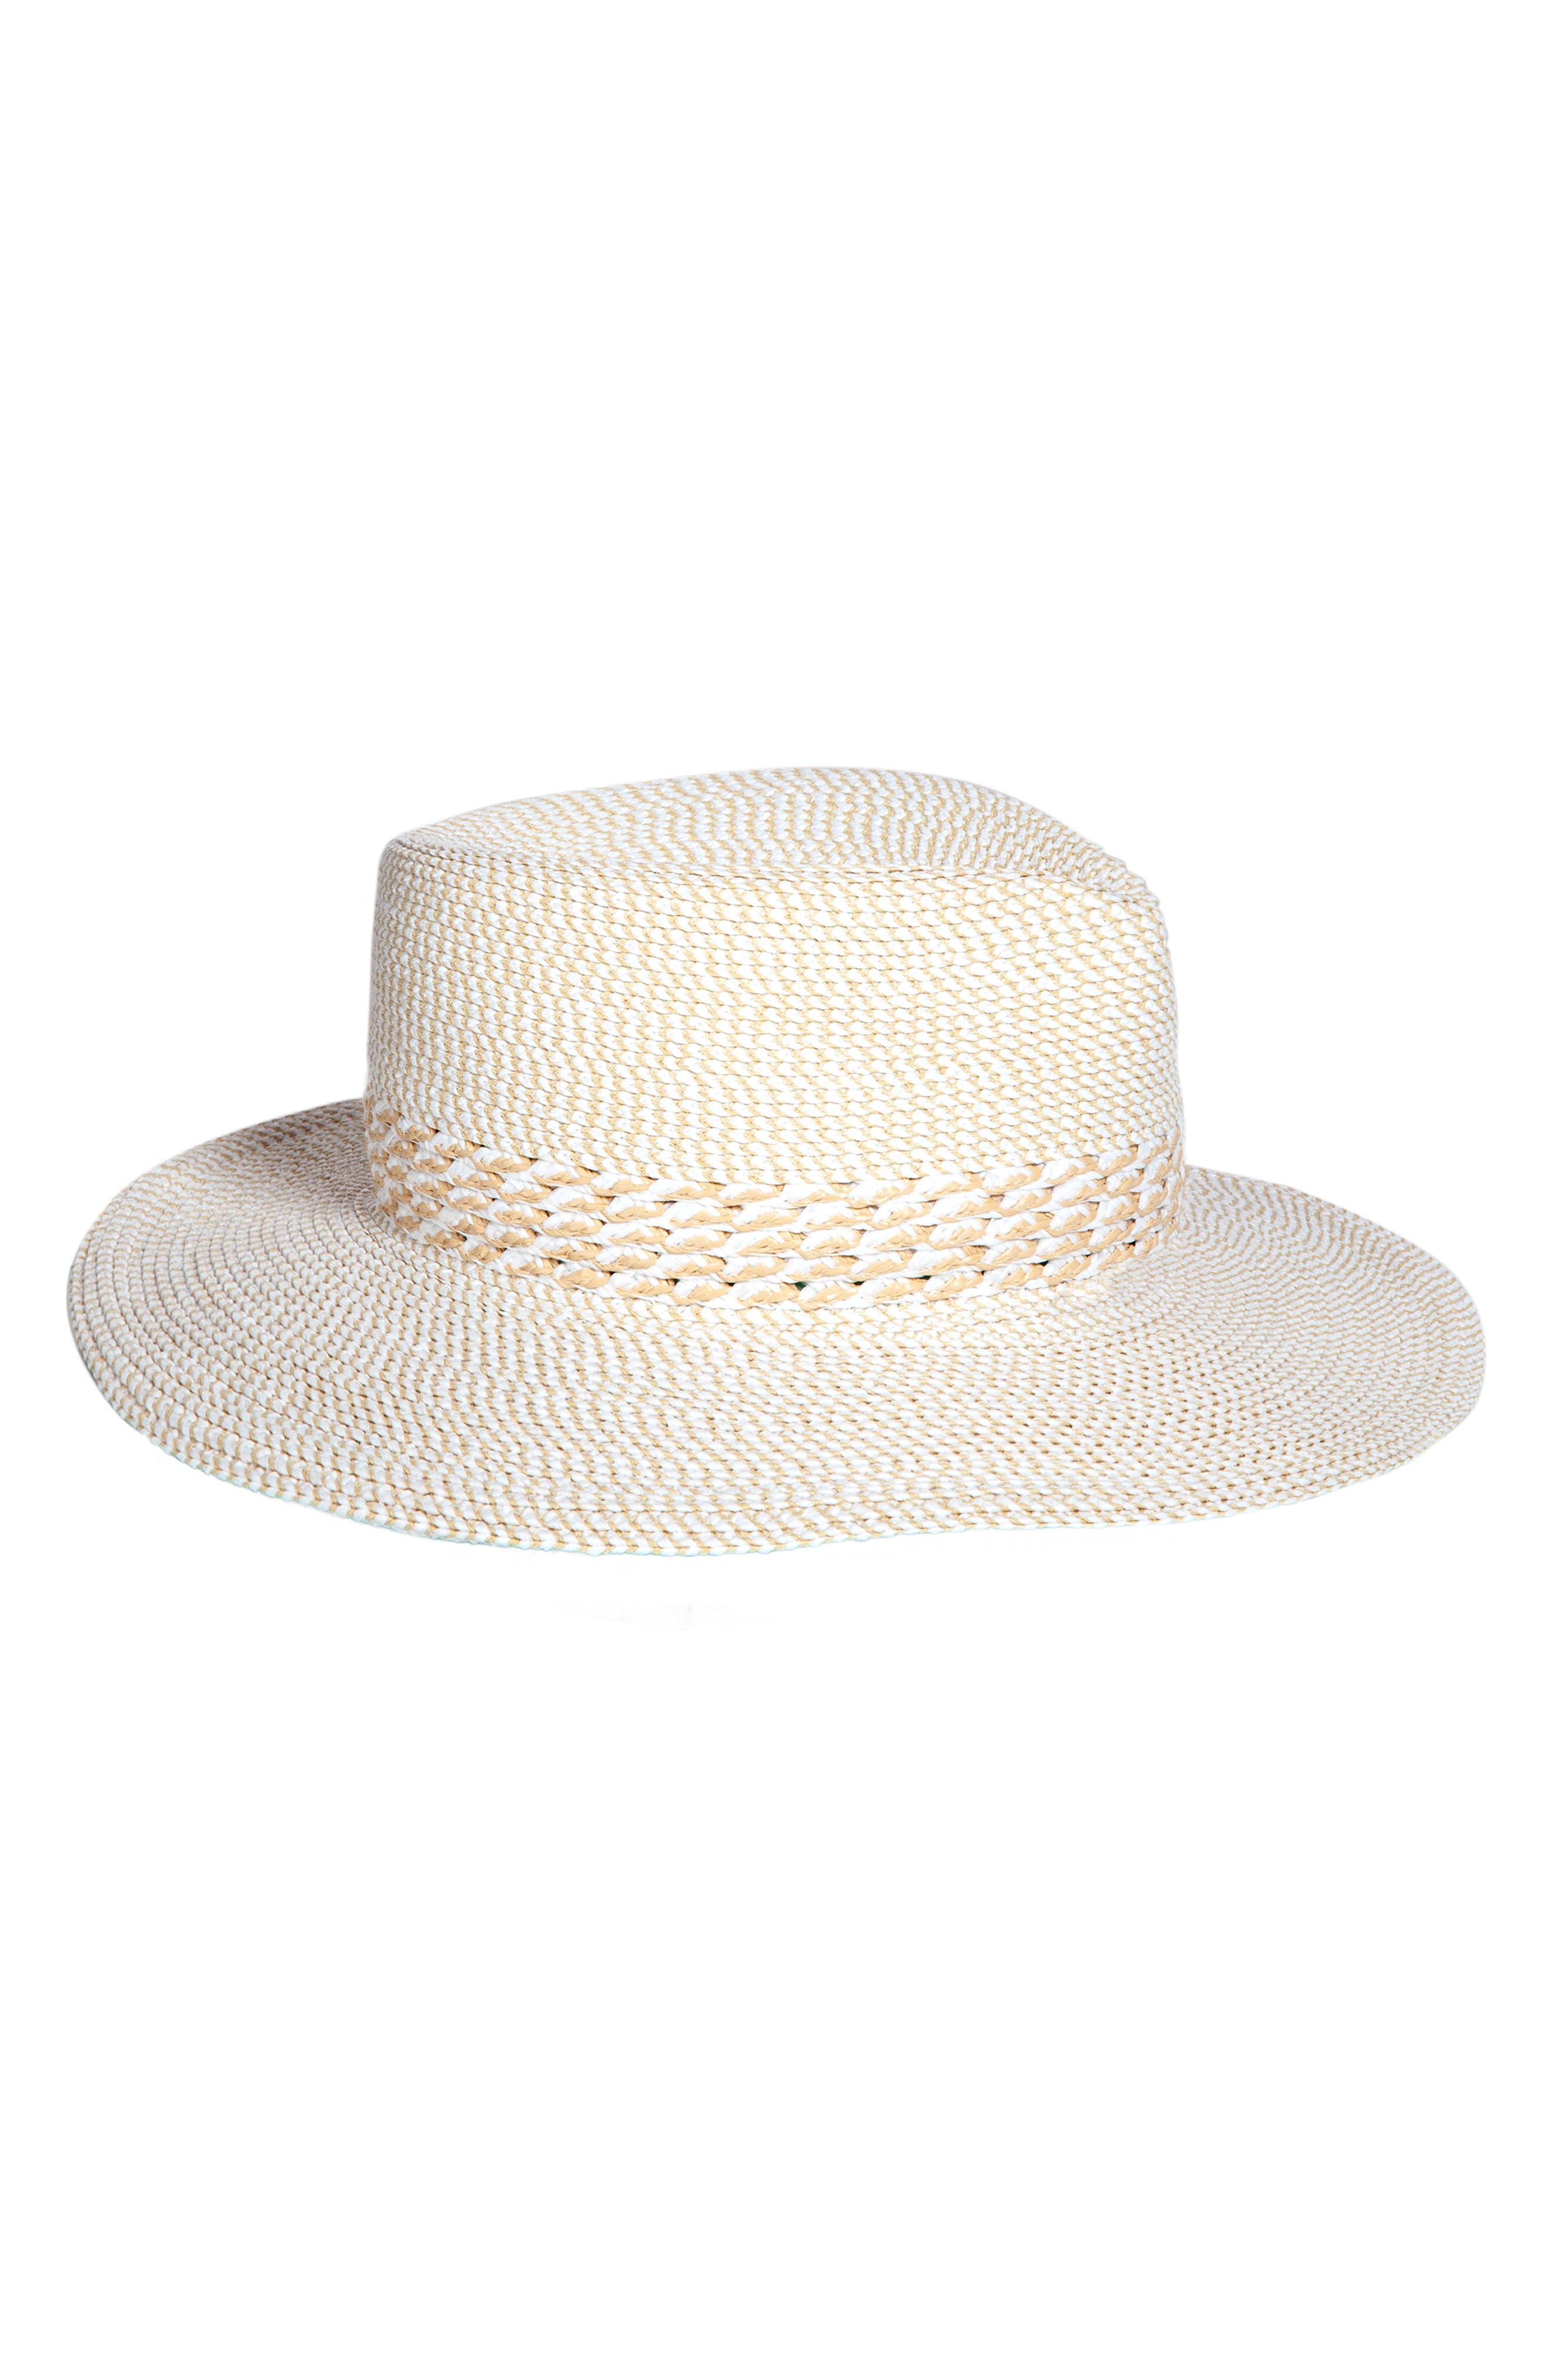 Bayou Packable Squishee<sup>®</sup> Fedora,                             Main thumbnail 1, color,                             WHITE MIX